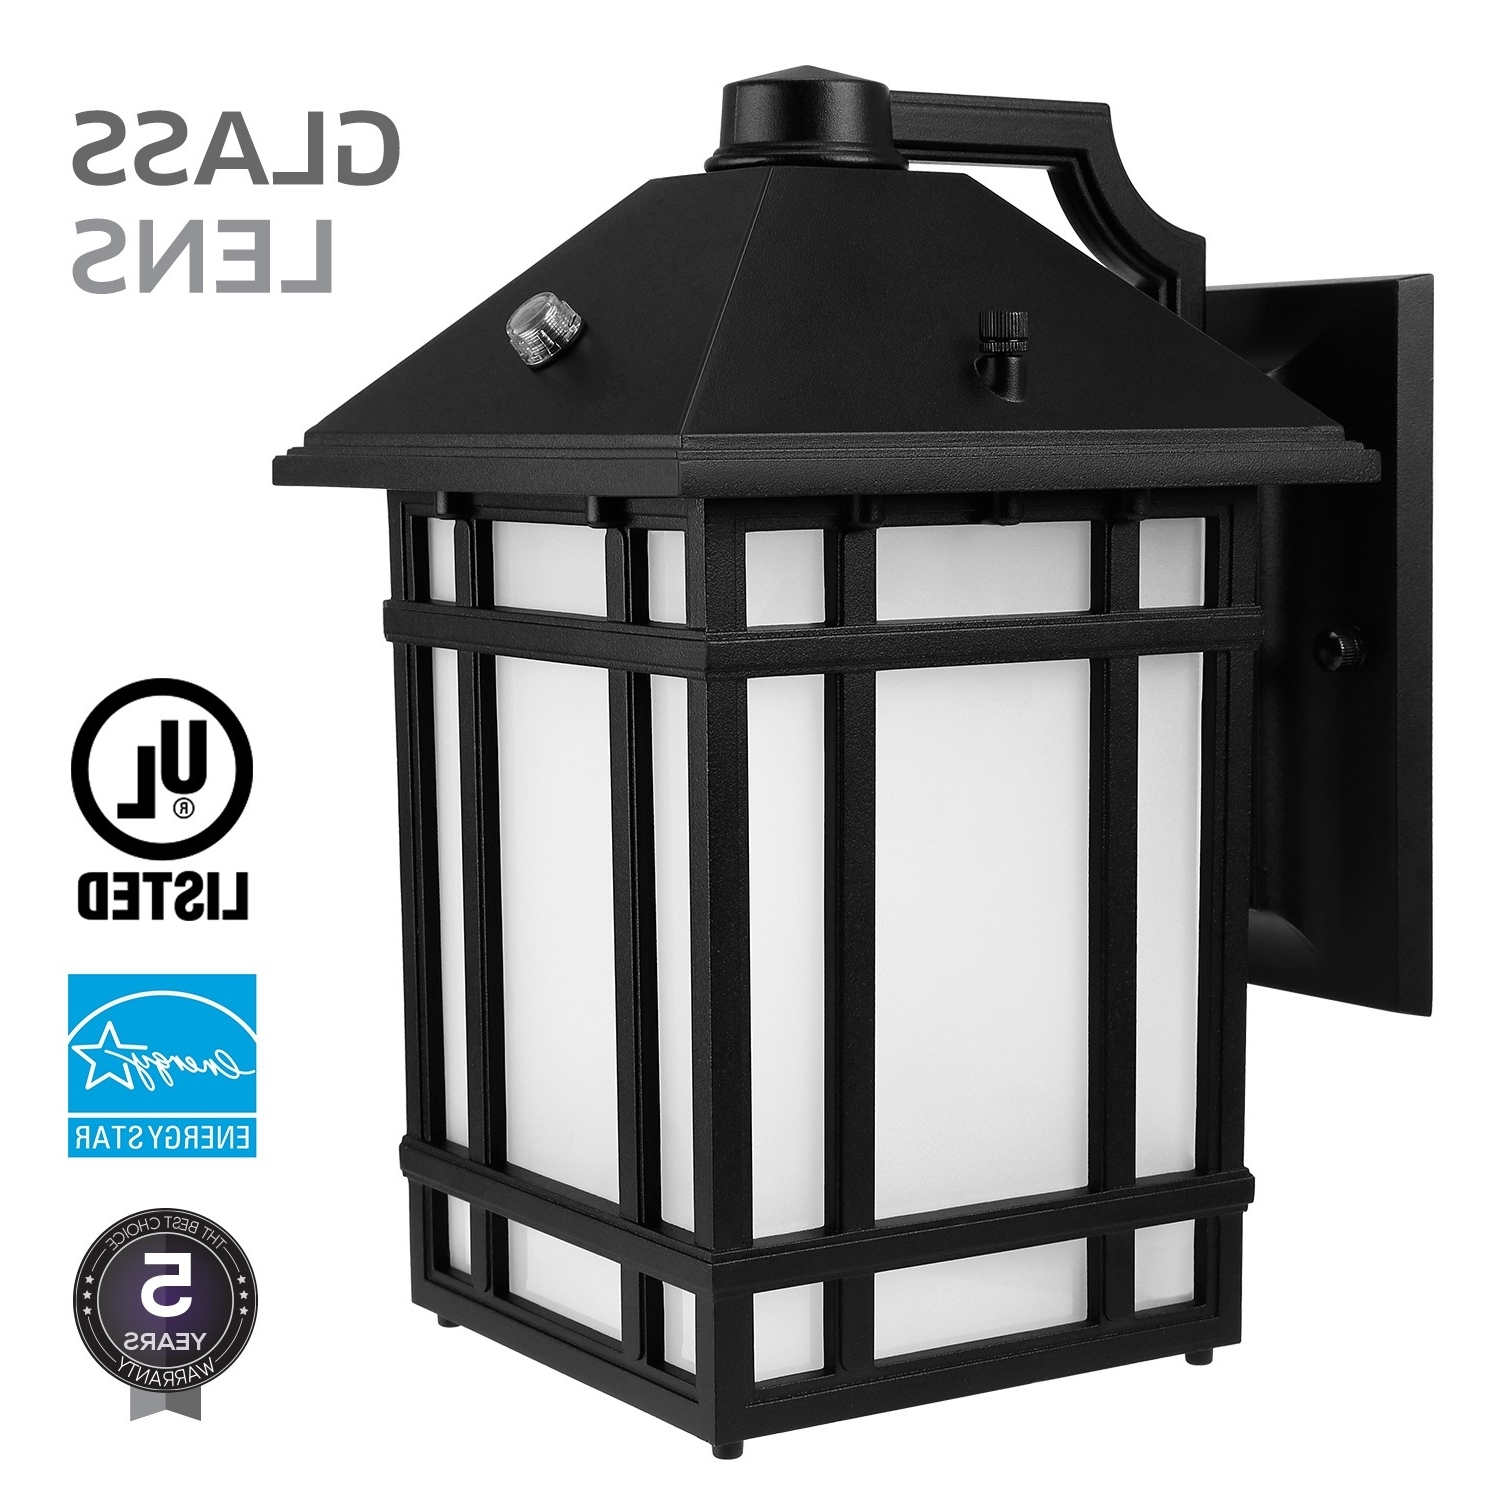 Led Outdoor Wall Lantern With Dusk To Dawn Photocell, 23w (130w For Recent Led Outdoor Wall Lights With Photocell (View 16 of 20)